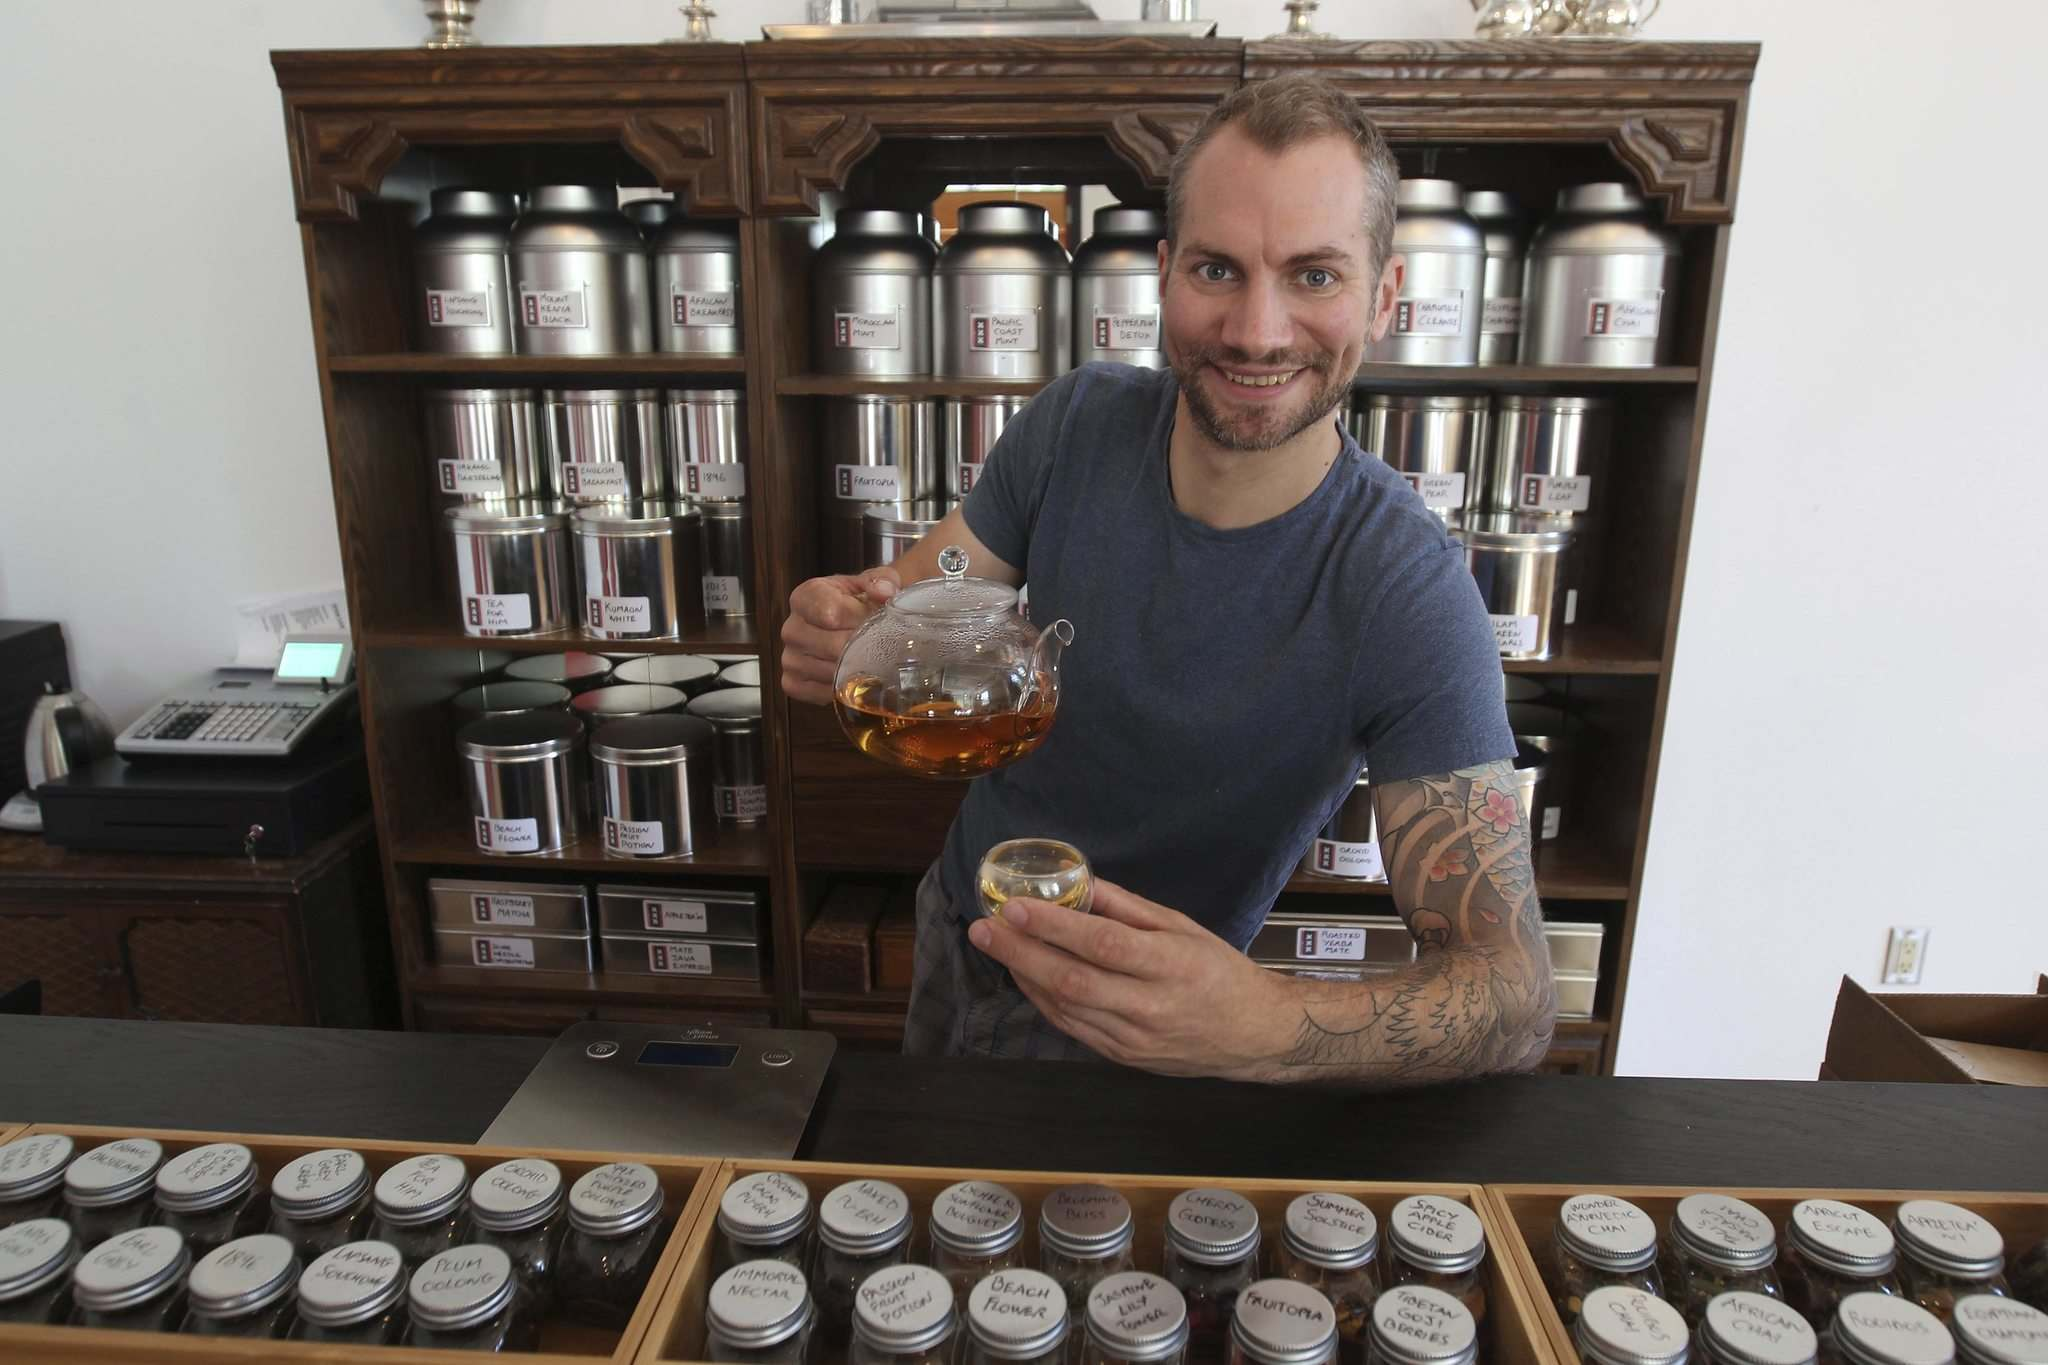 JOE BRYKSA / WINNIPEG FREE PRESS</p><p>Mark Turne at Amsterdam Tea Room on Bannatyne Avenue.</p>